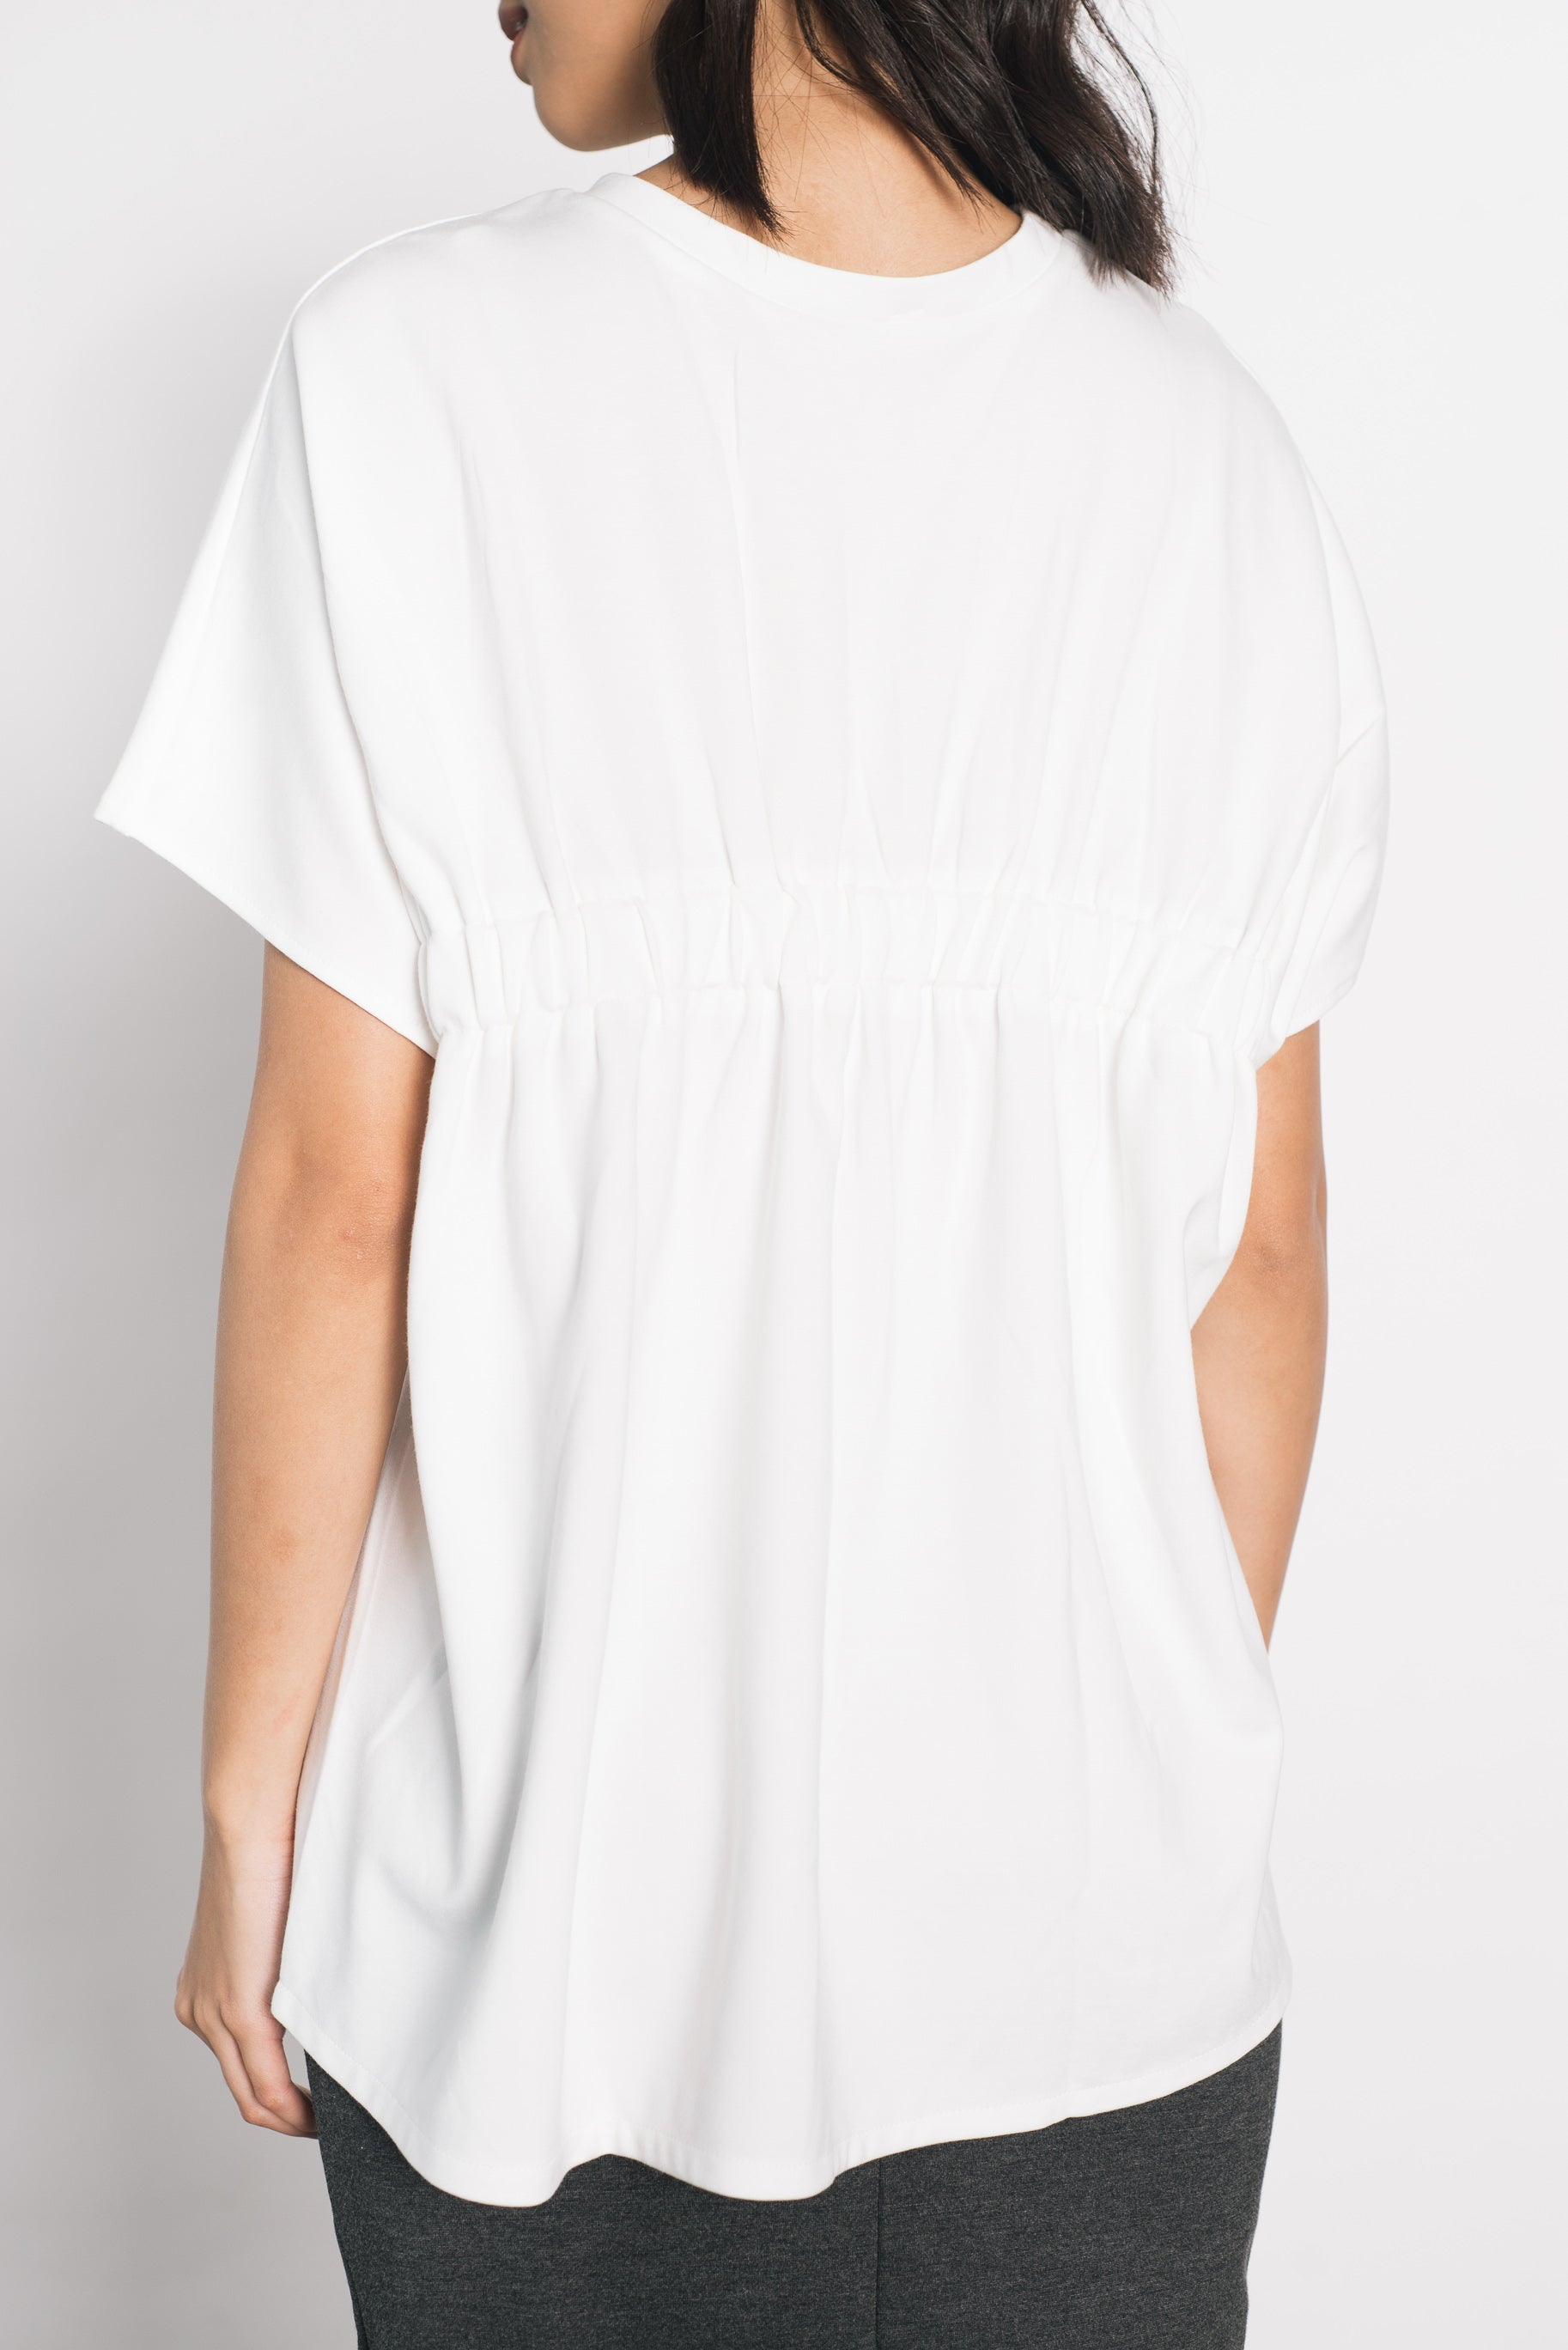 Dores Smocked Top in White